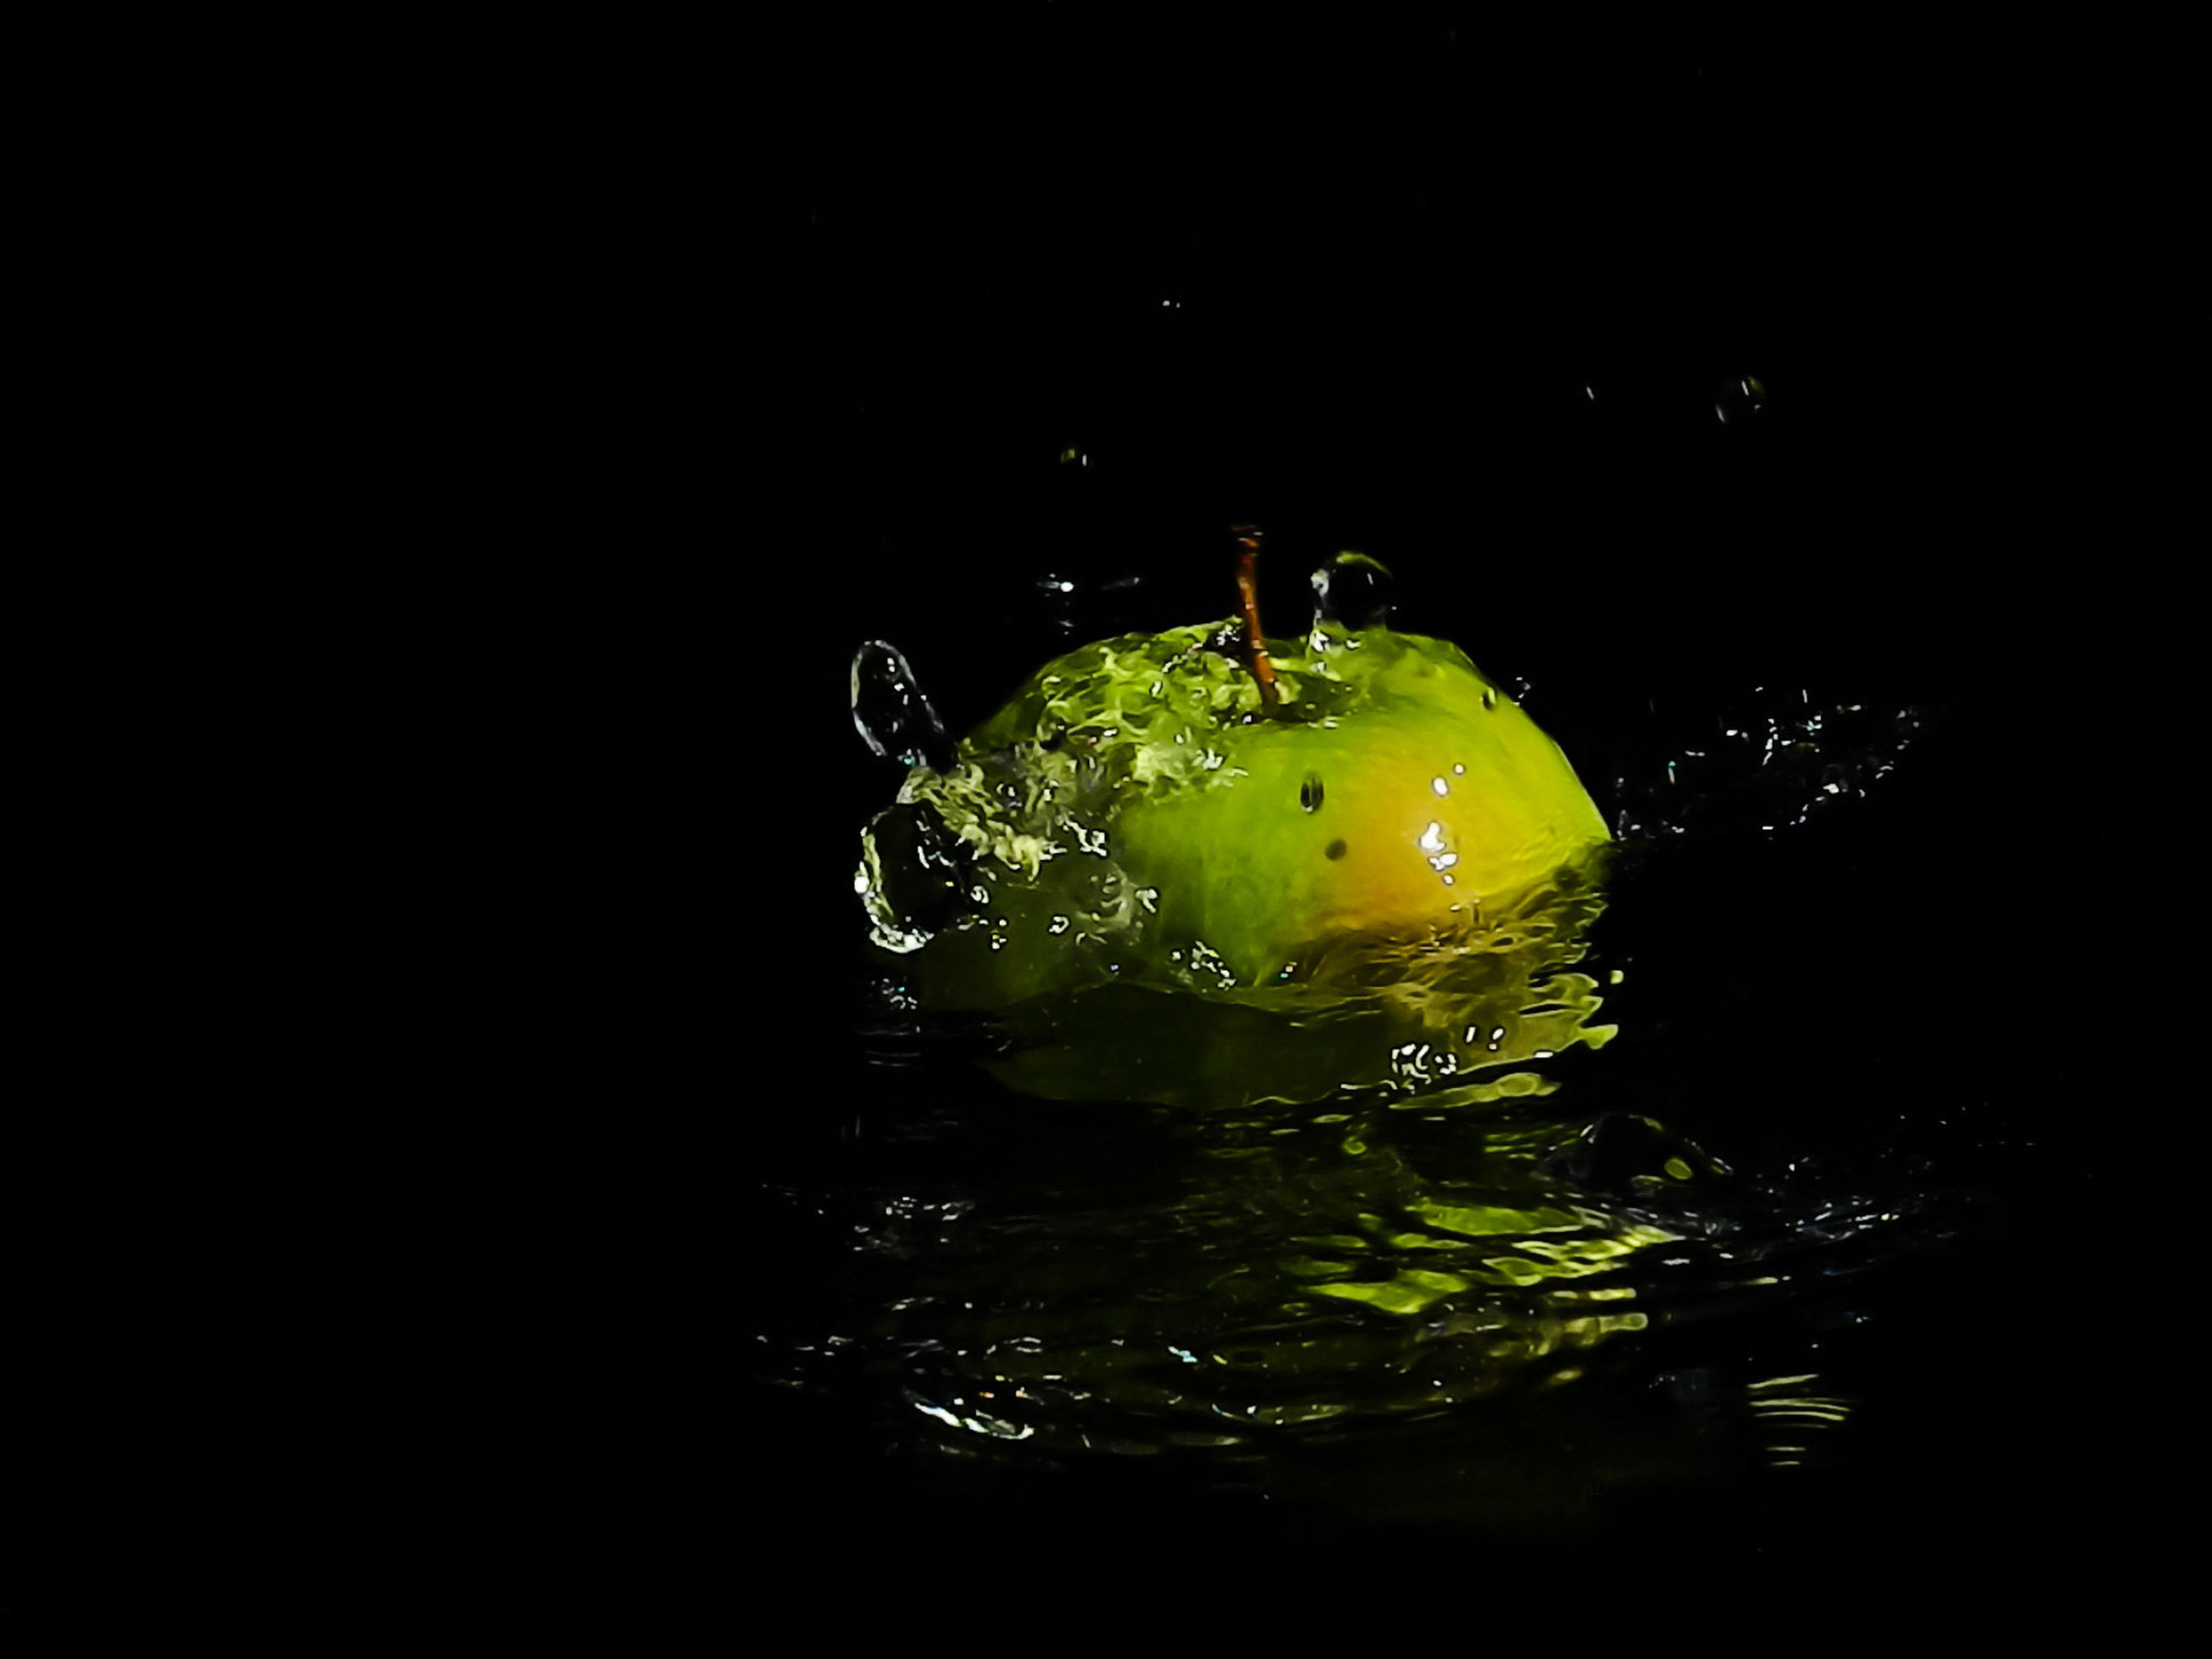 yellow, black background, studio shot, macro photography, darkness, green, water, night, no people, drop, indoors, reflection, splashing, close-up, food and drink, light, copy space, freshness, nature, motion, wet, leaf, food, single object, impact